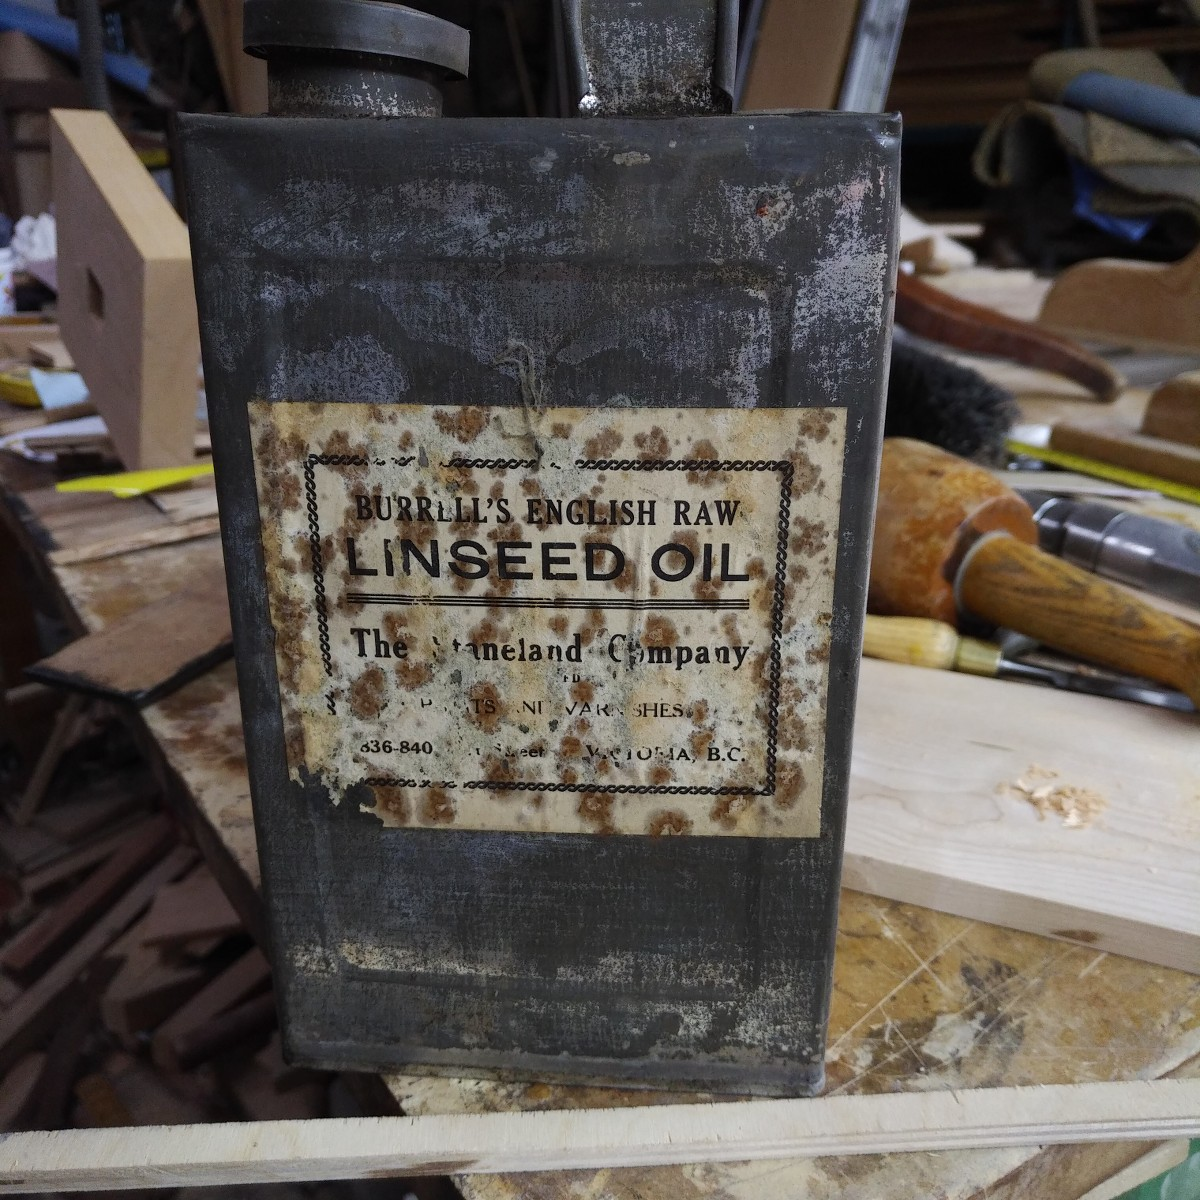 Linseed oil - shelf life??